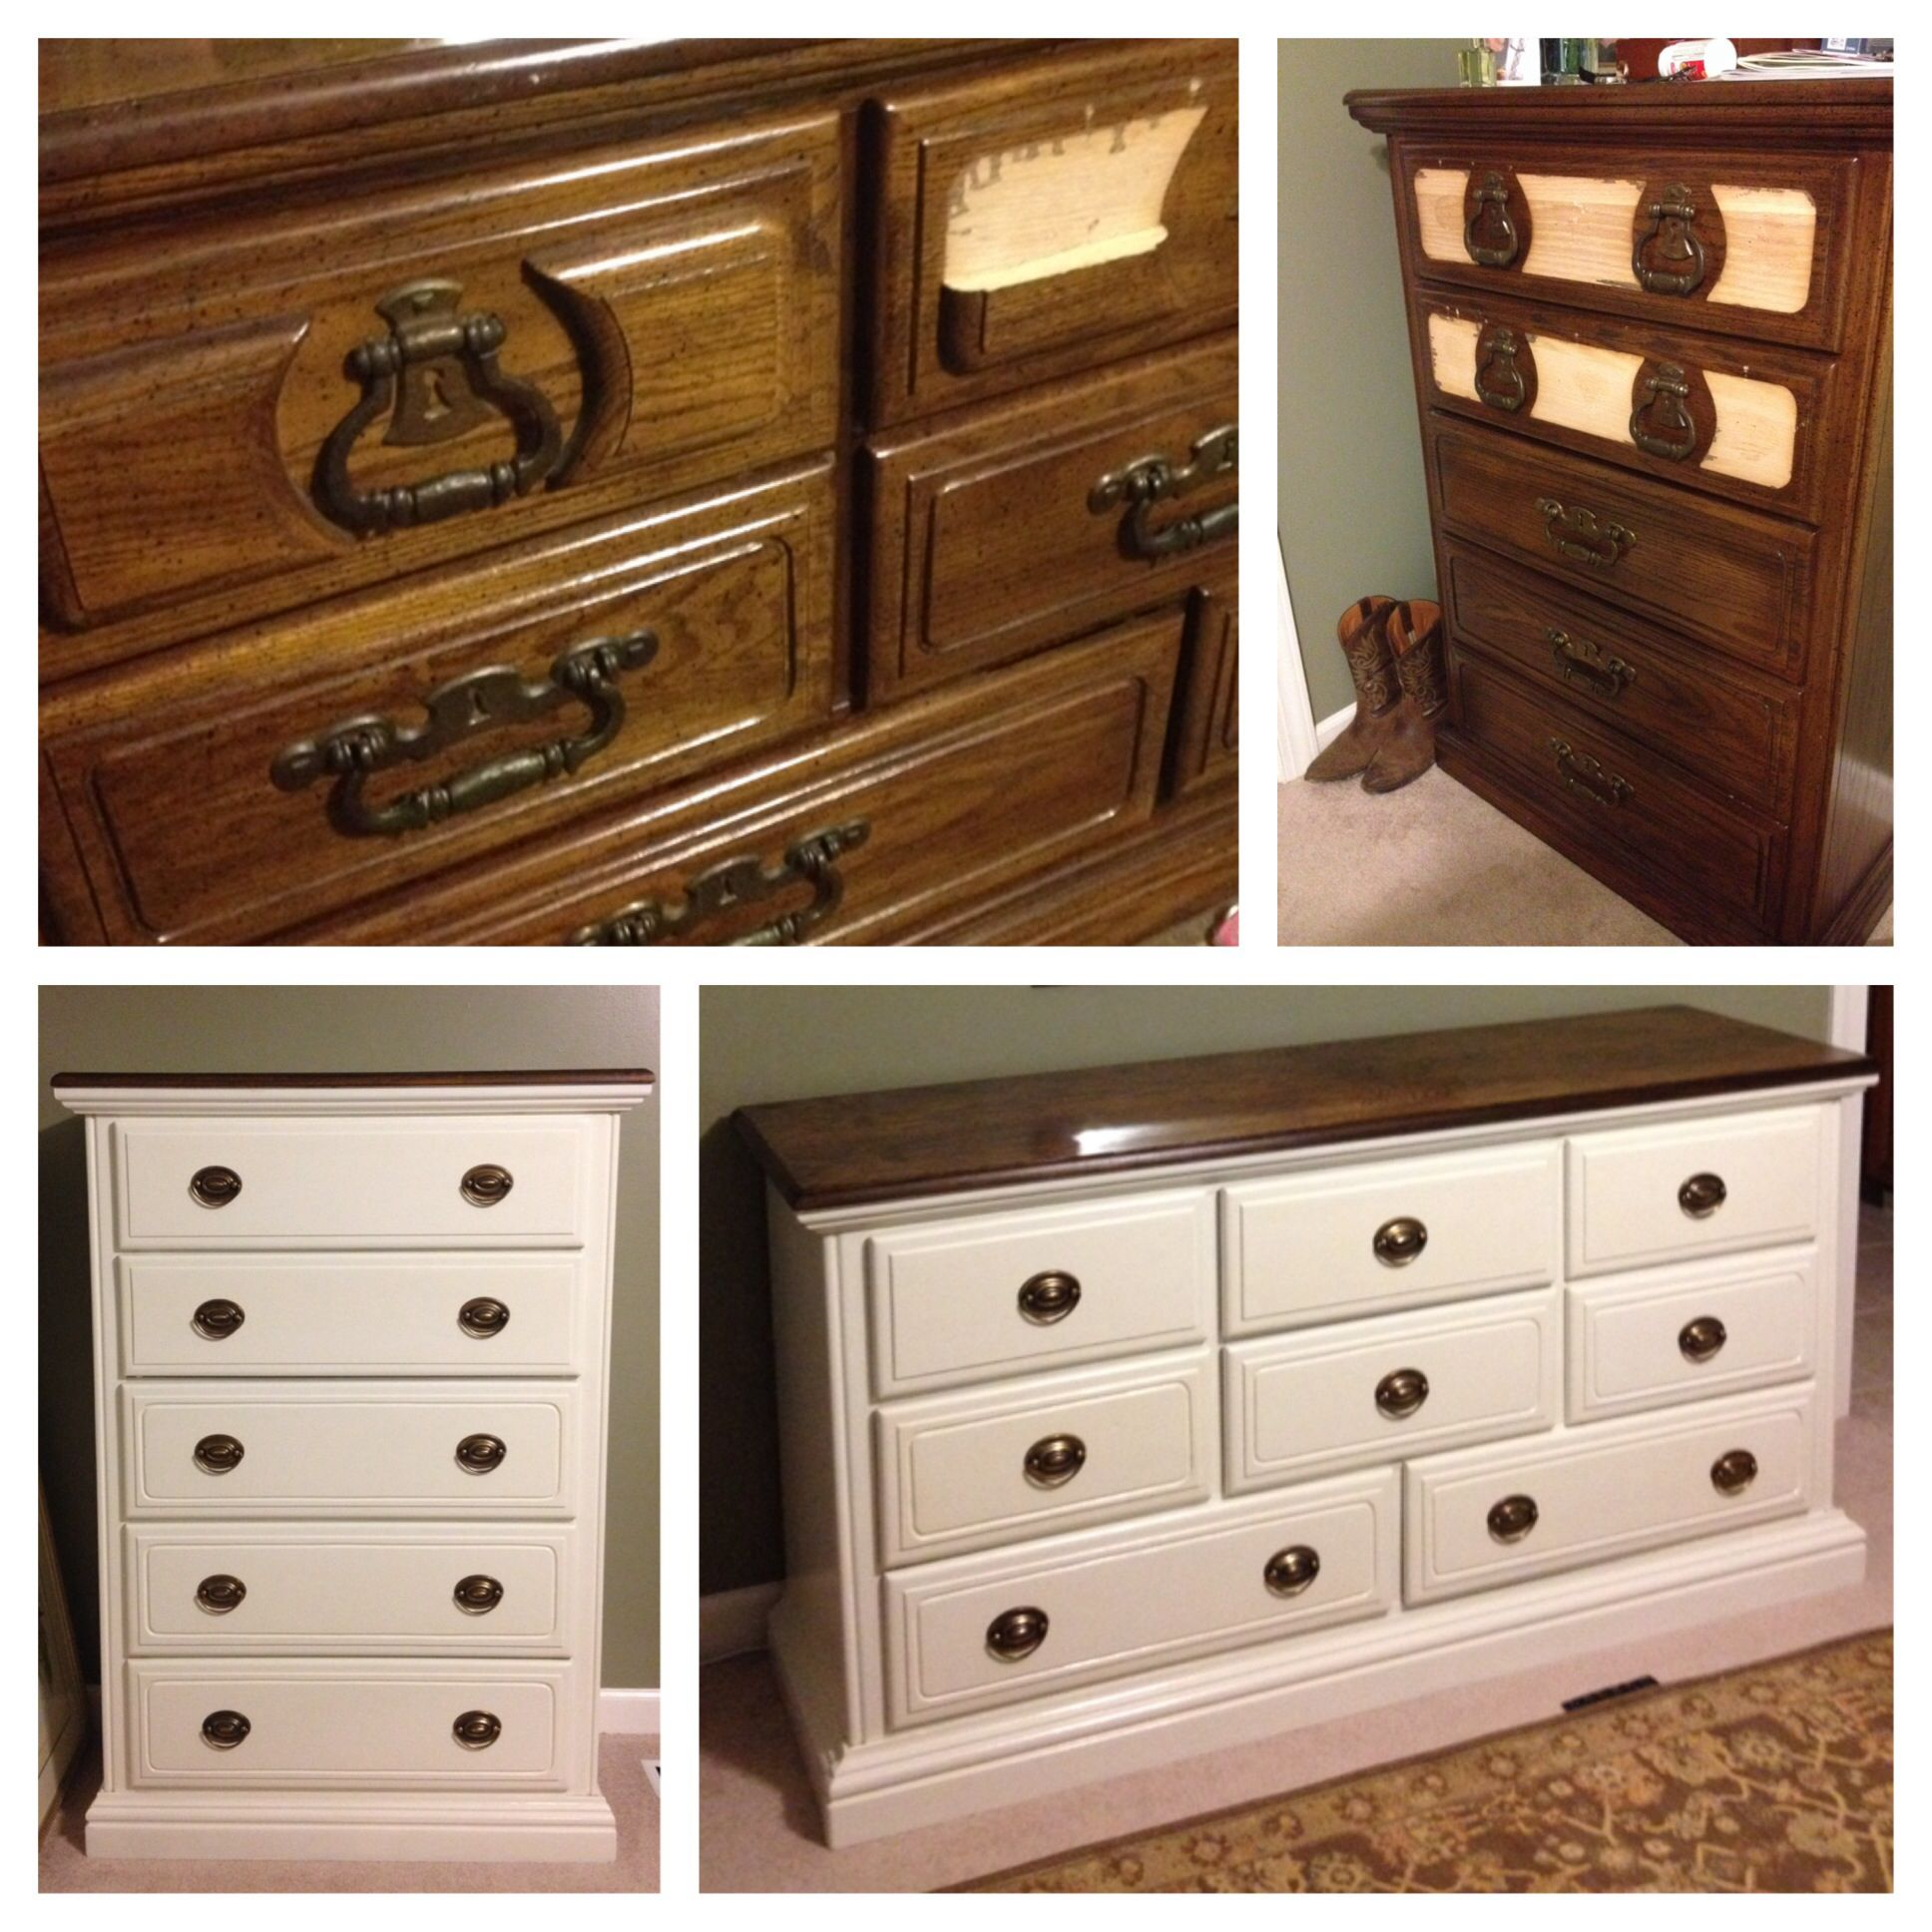 I Painted Our Inherited 1970s Dressers. I Love To Keep